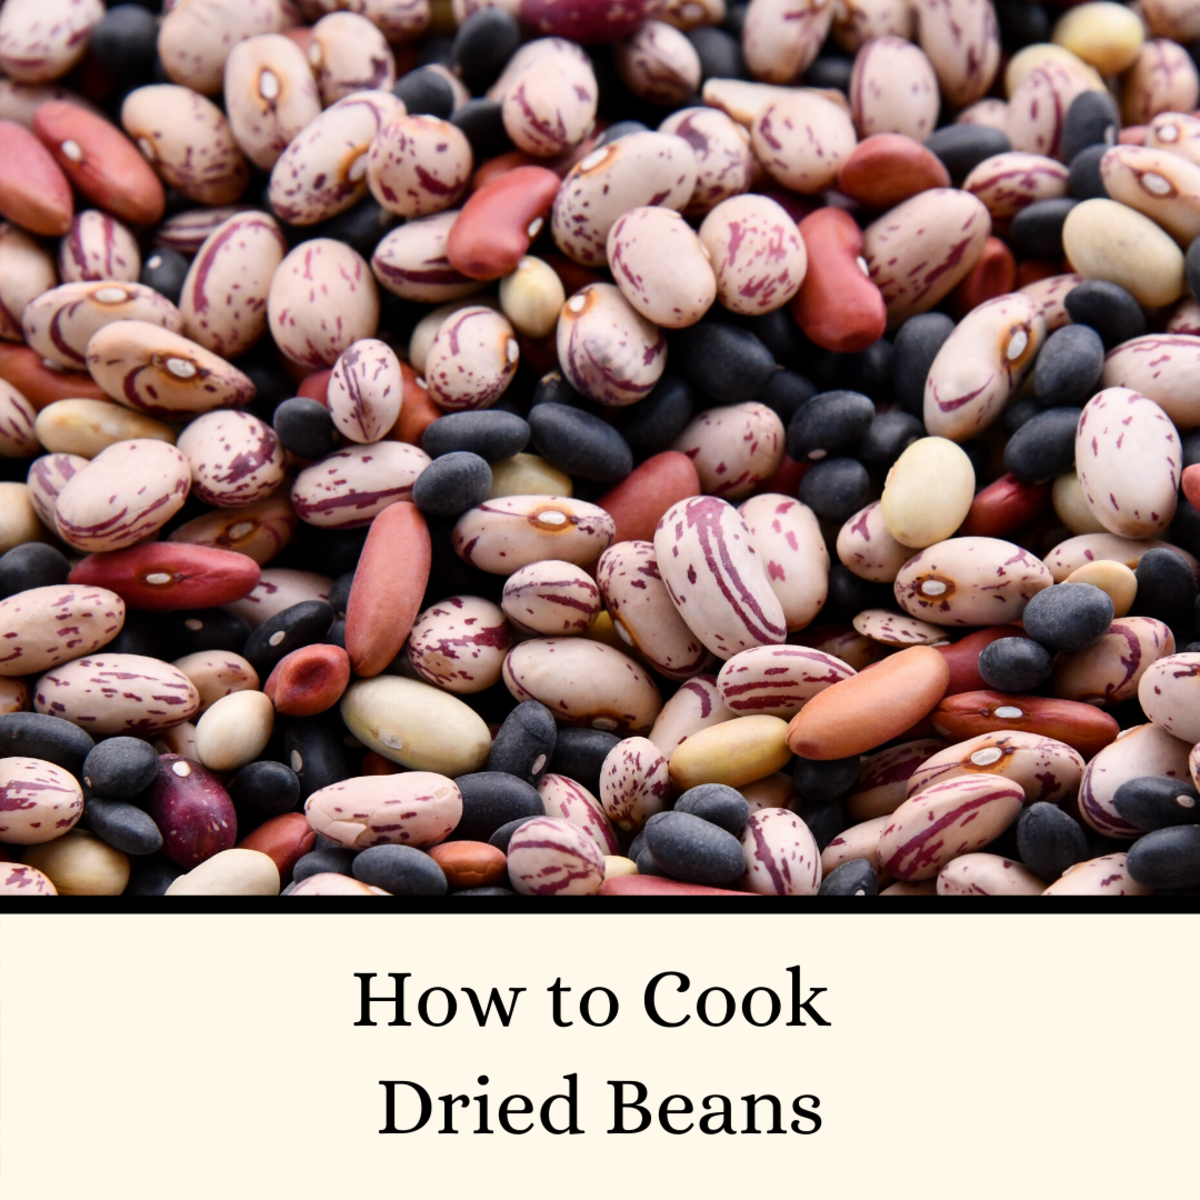 Cooking beans is easy if you follow these instructions.